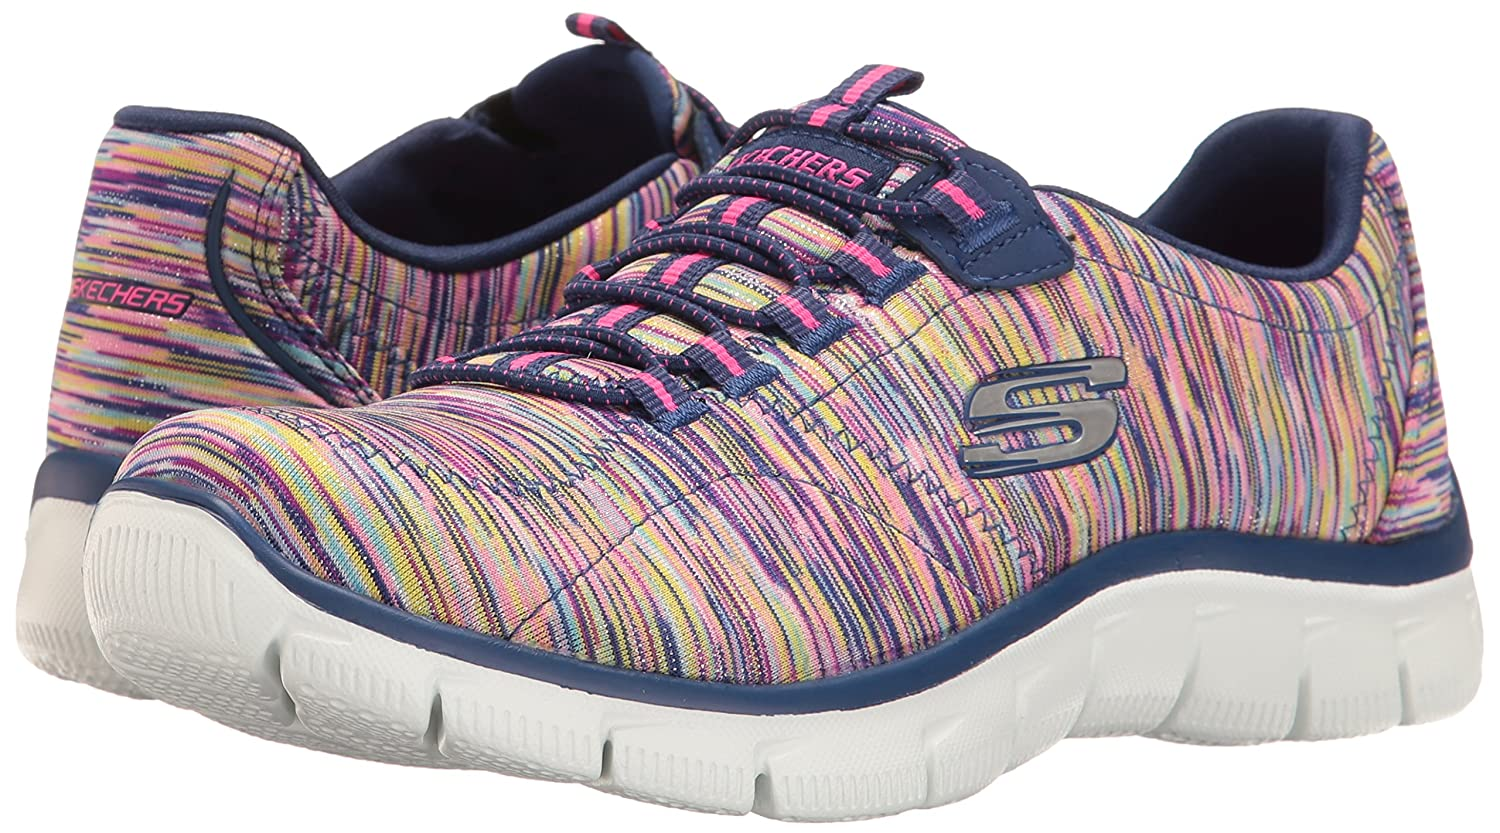 Skechers Sport Women's Empire Fashion Sneaker B01K4GL2D8 11 B(M) US|Navy/Multi